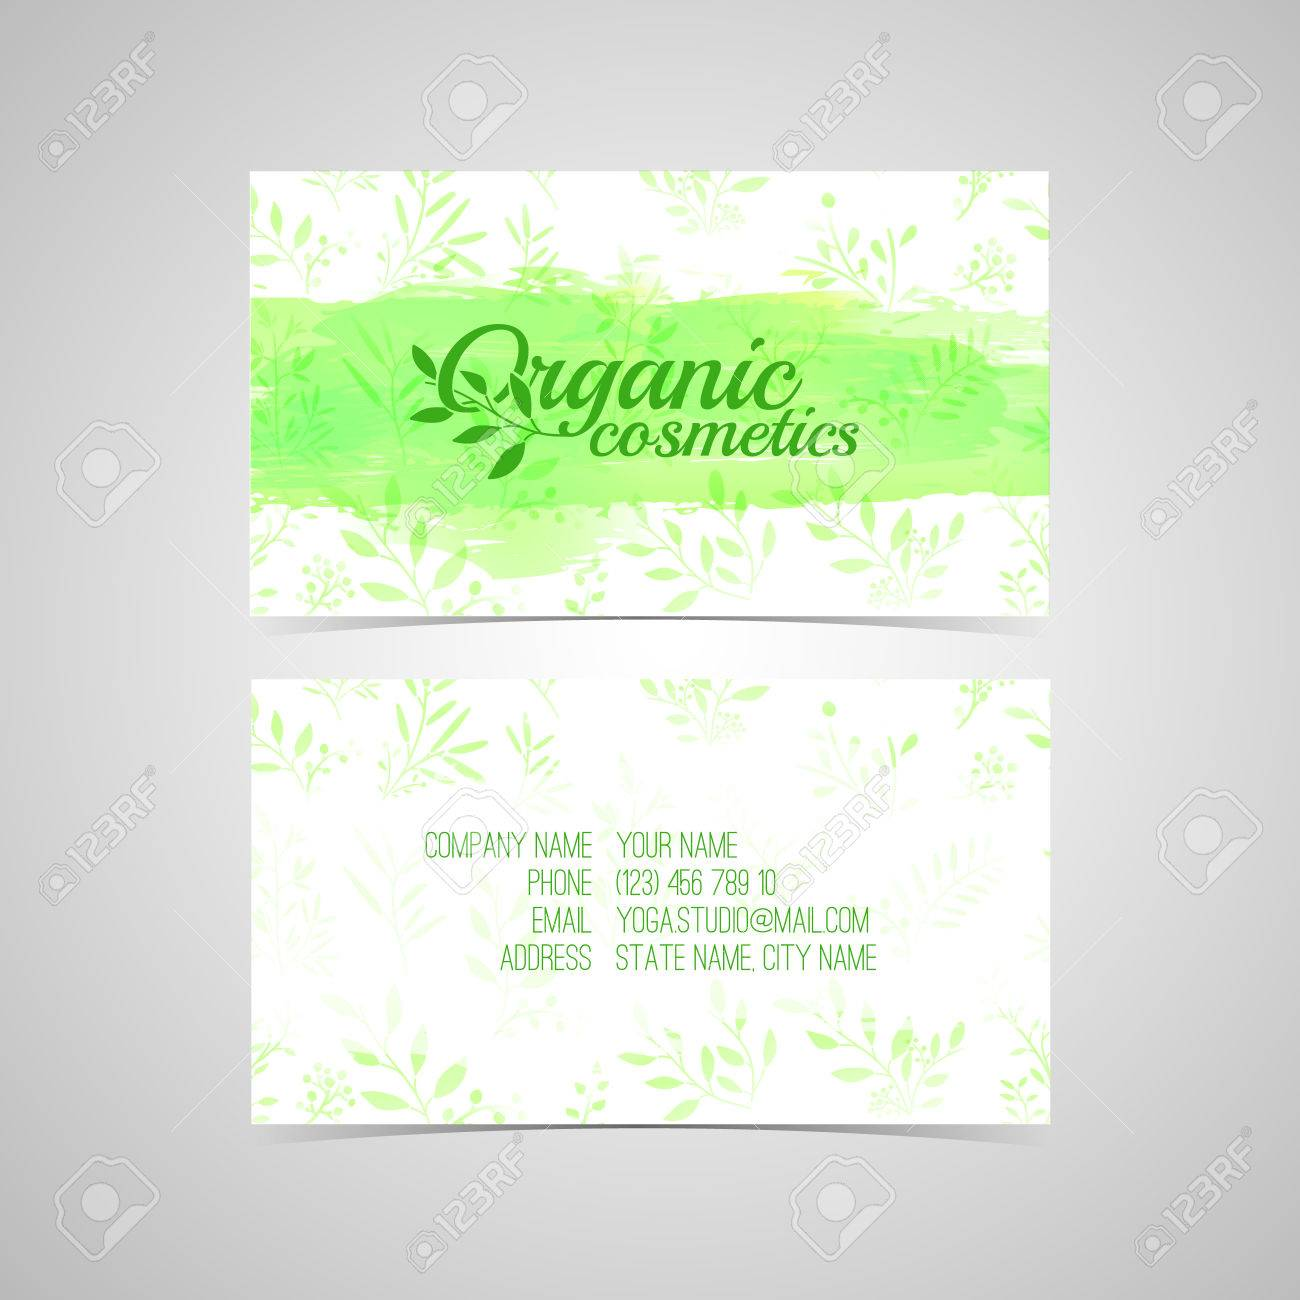 Design Template For Organic Cosmetics Business Card With Watercolor ...